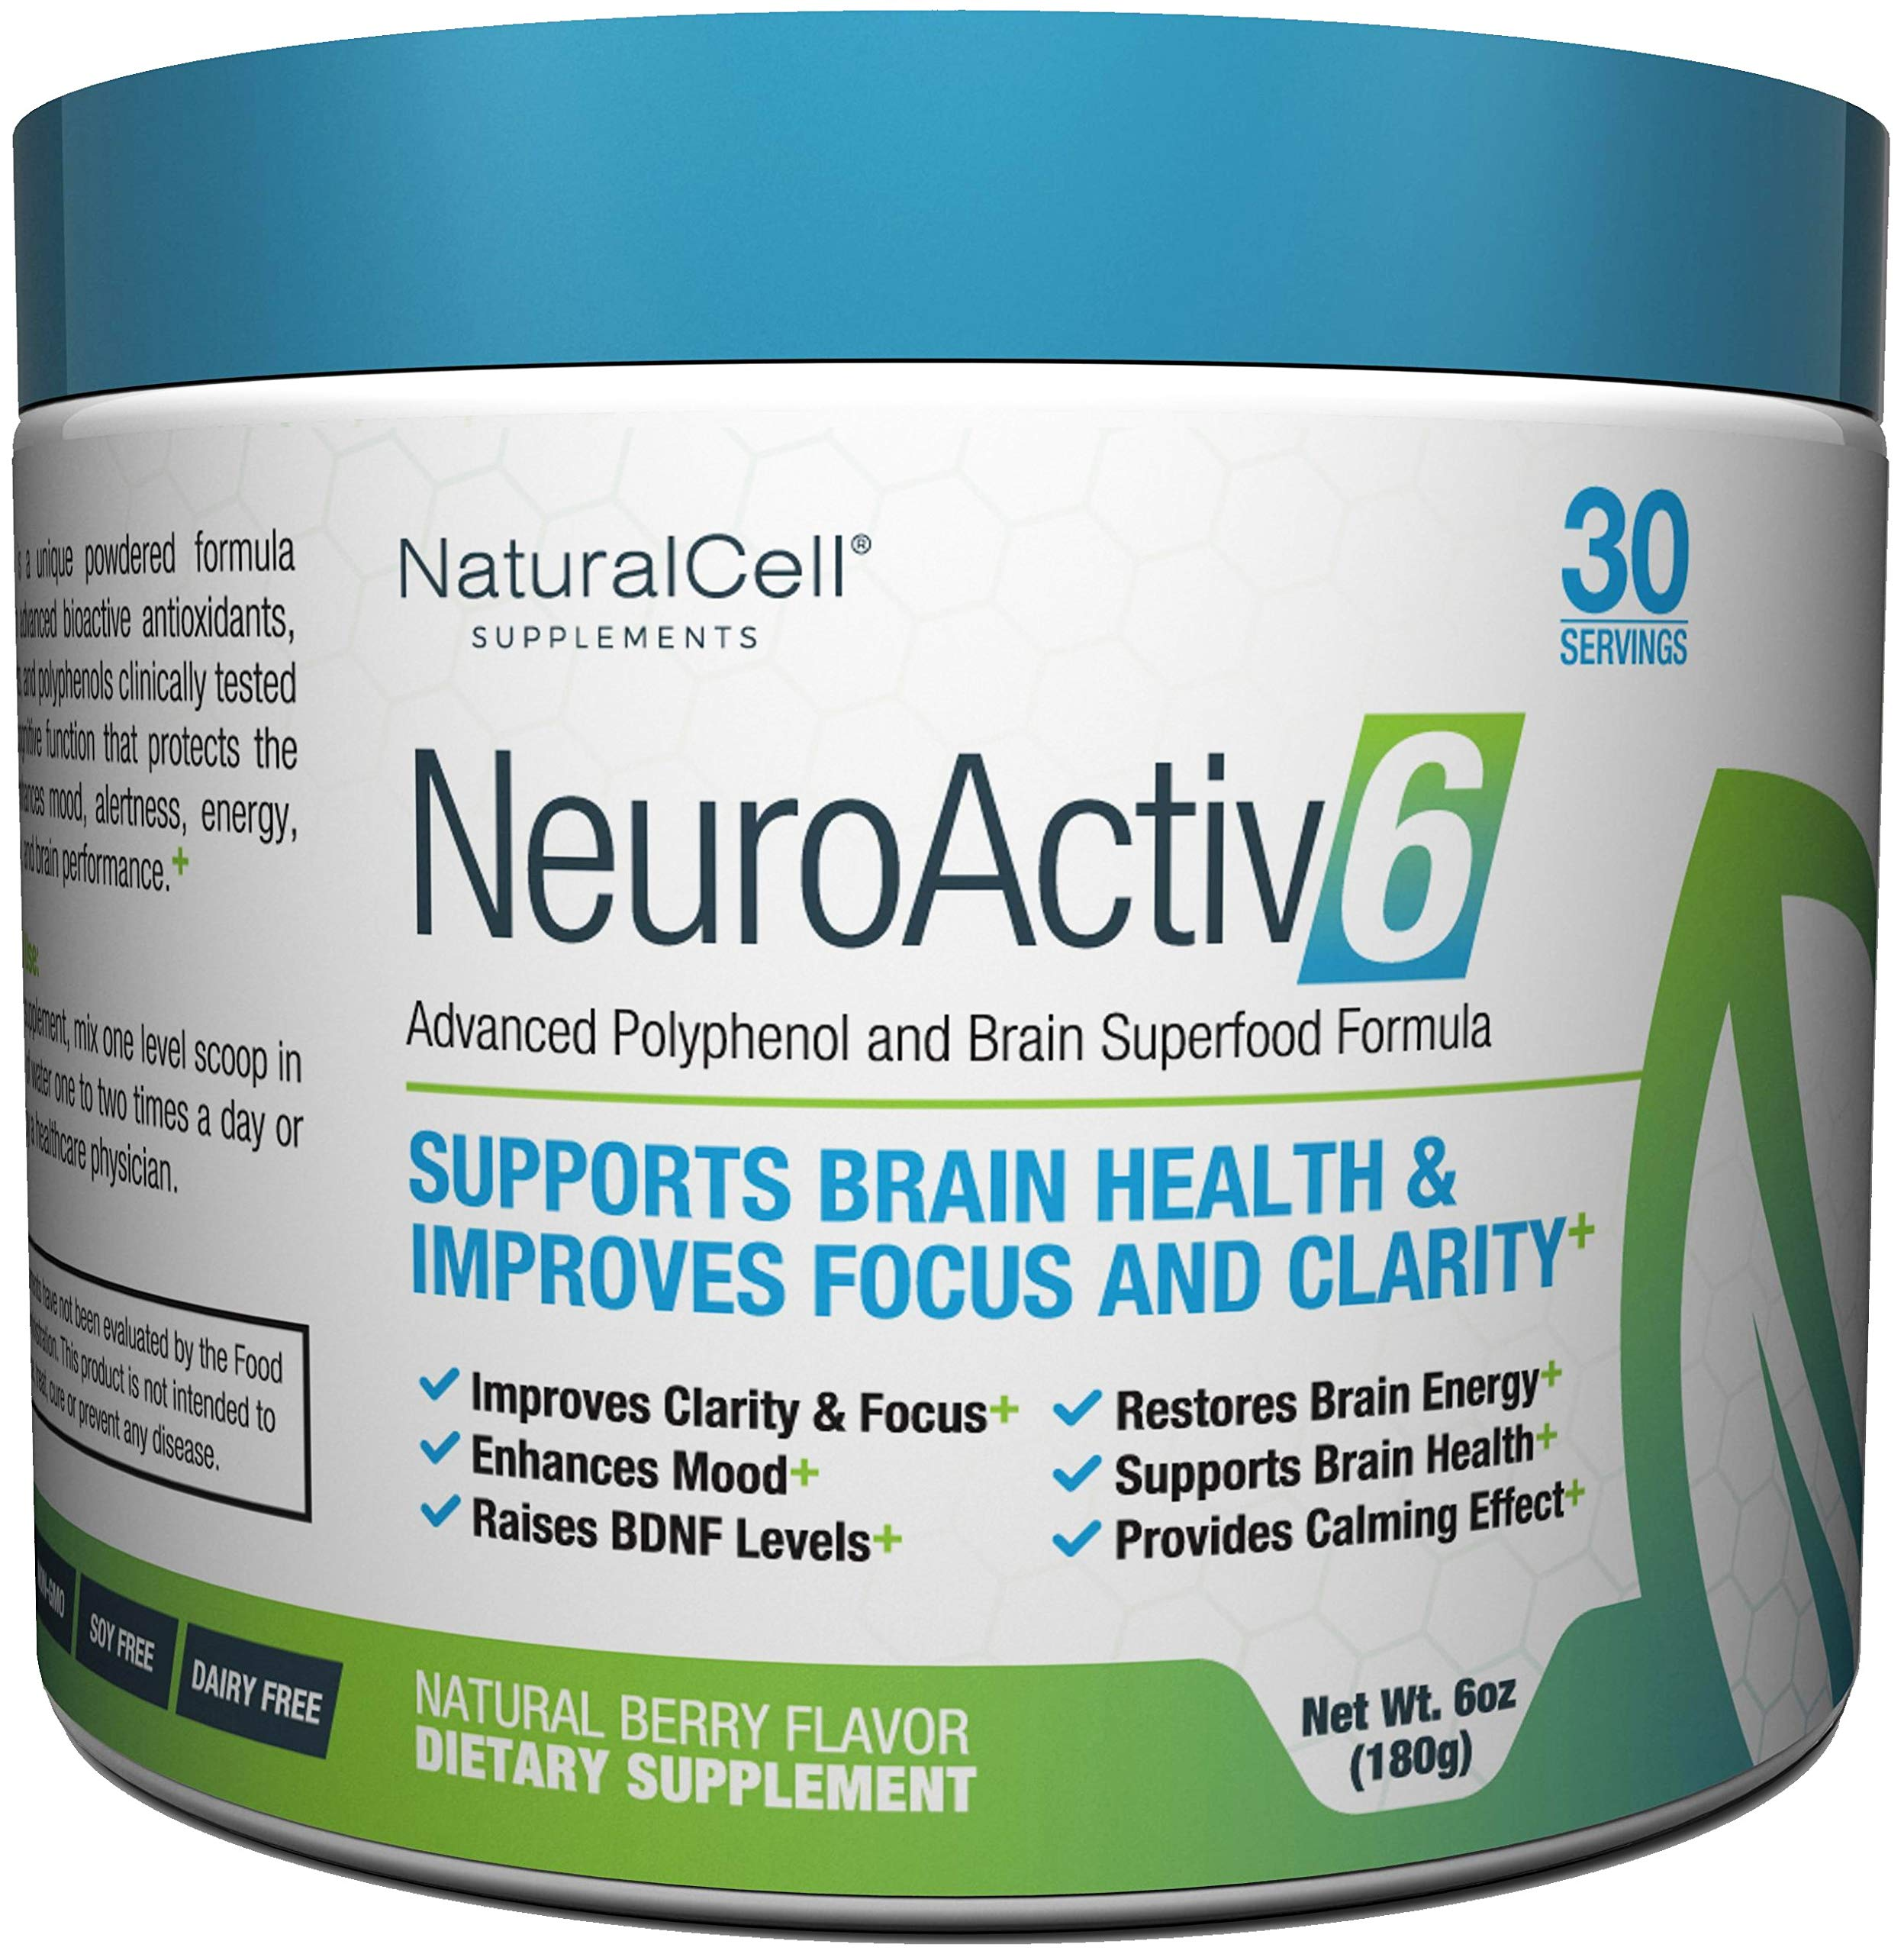 NeuroActiv6 - Nootropic Superfood Supplement - Improve Memory, Boost Focus, Enhance Clarity, Support Mood. Caffeine-Free Cognitive Brain Energy with Citicoline, Coffee Fruit Extract & Ashwagandha by NaturalCell